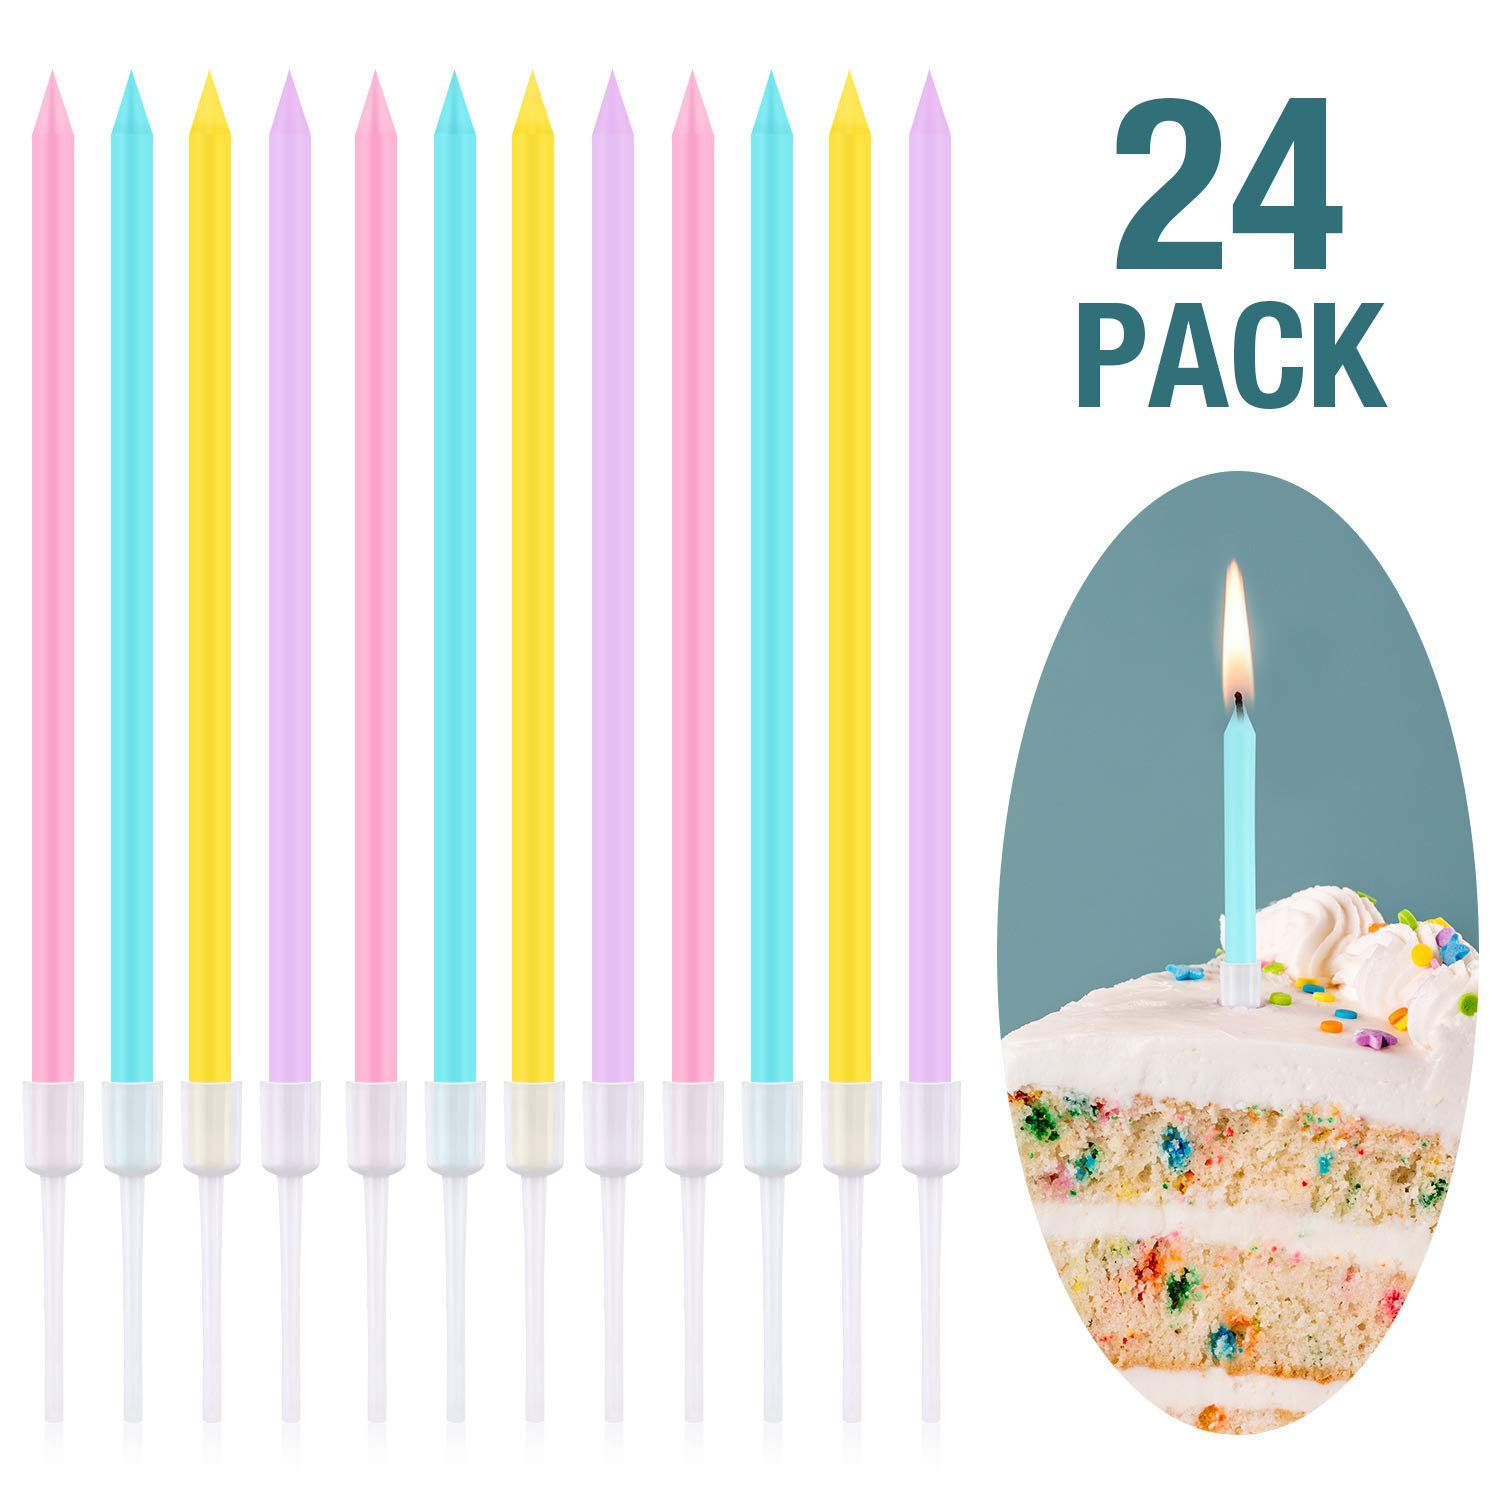 Frienda Metallic Birthday Cake Candles In Holders Long Thin Cupcake Wedding Party Decorations Pink Yellow Blue And Purple